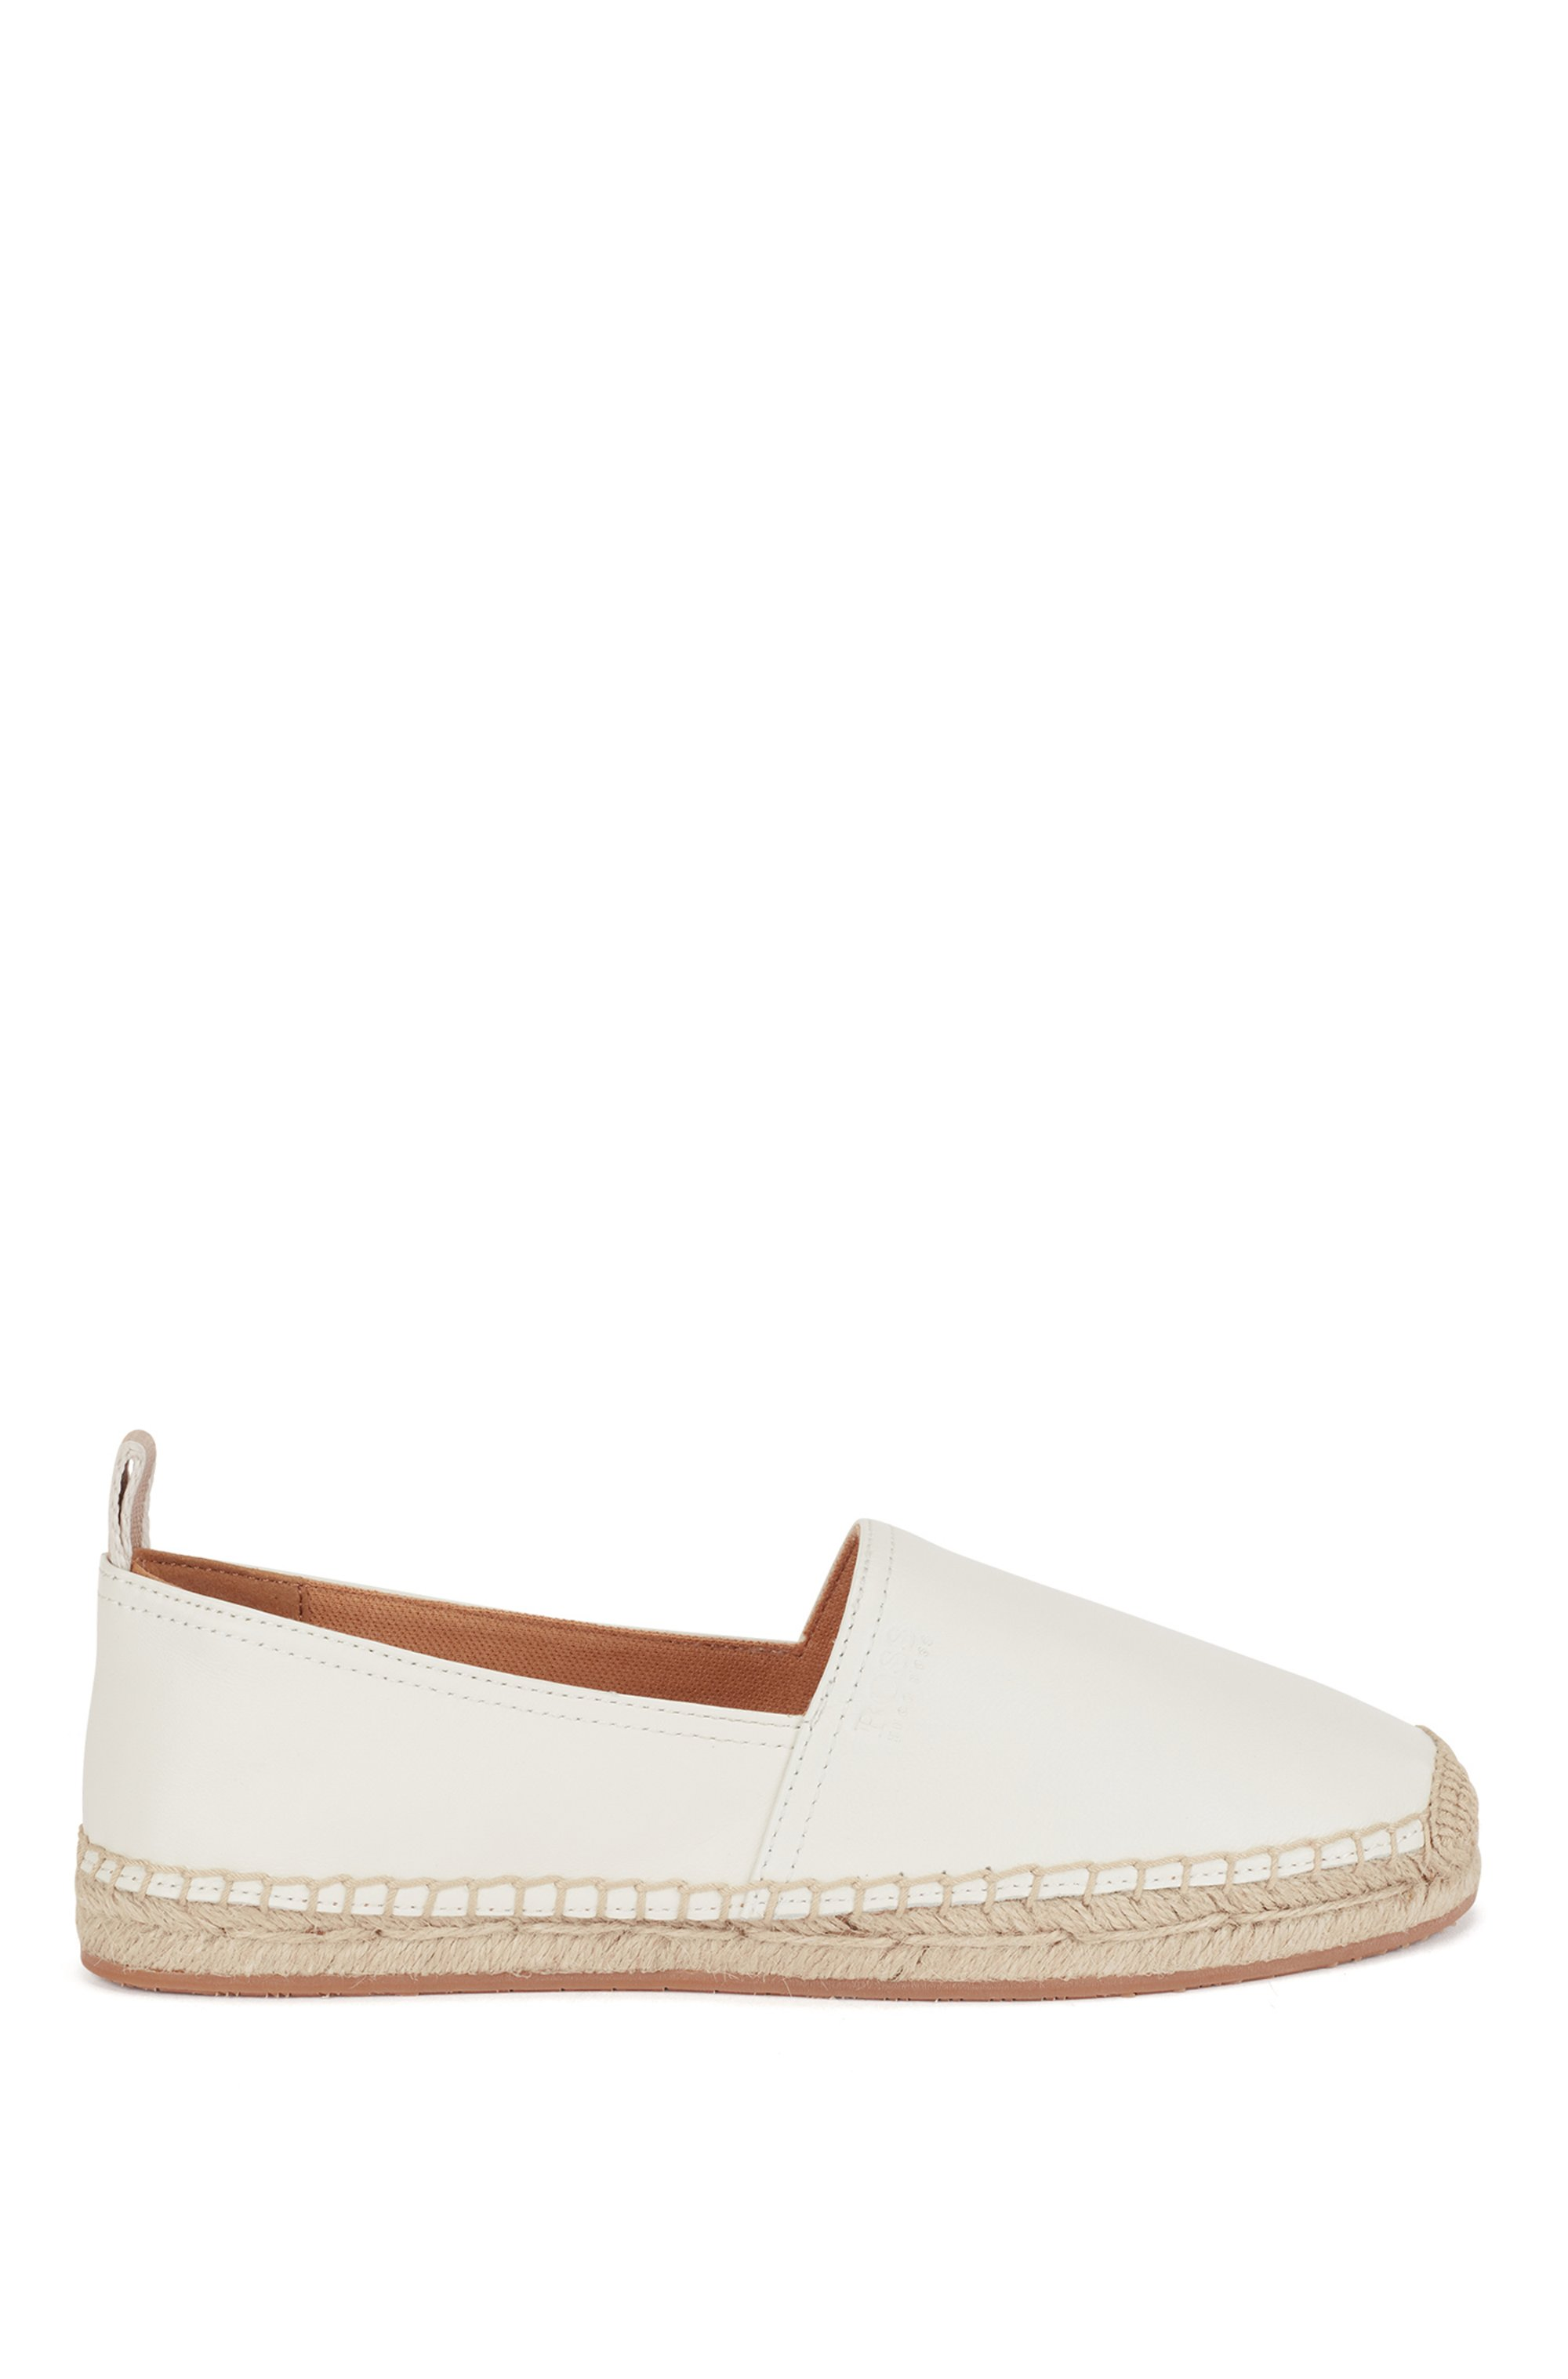 Espadrilles in nappa leather with embossed logo, White